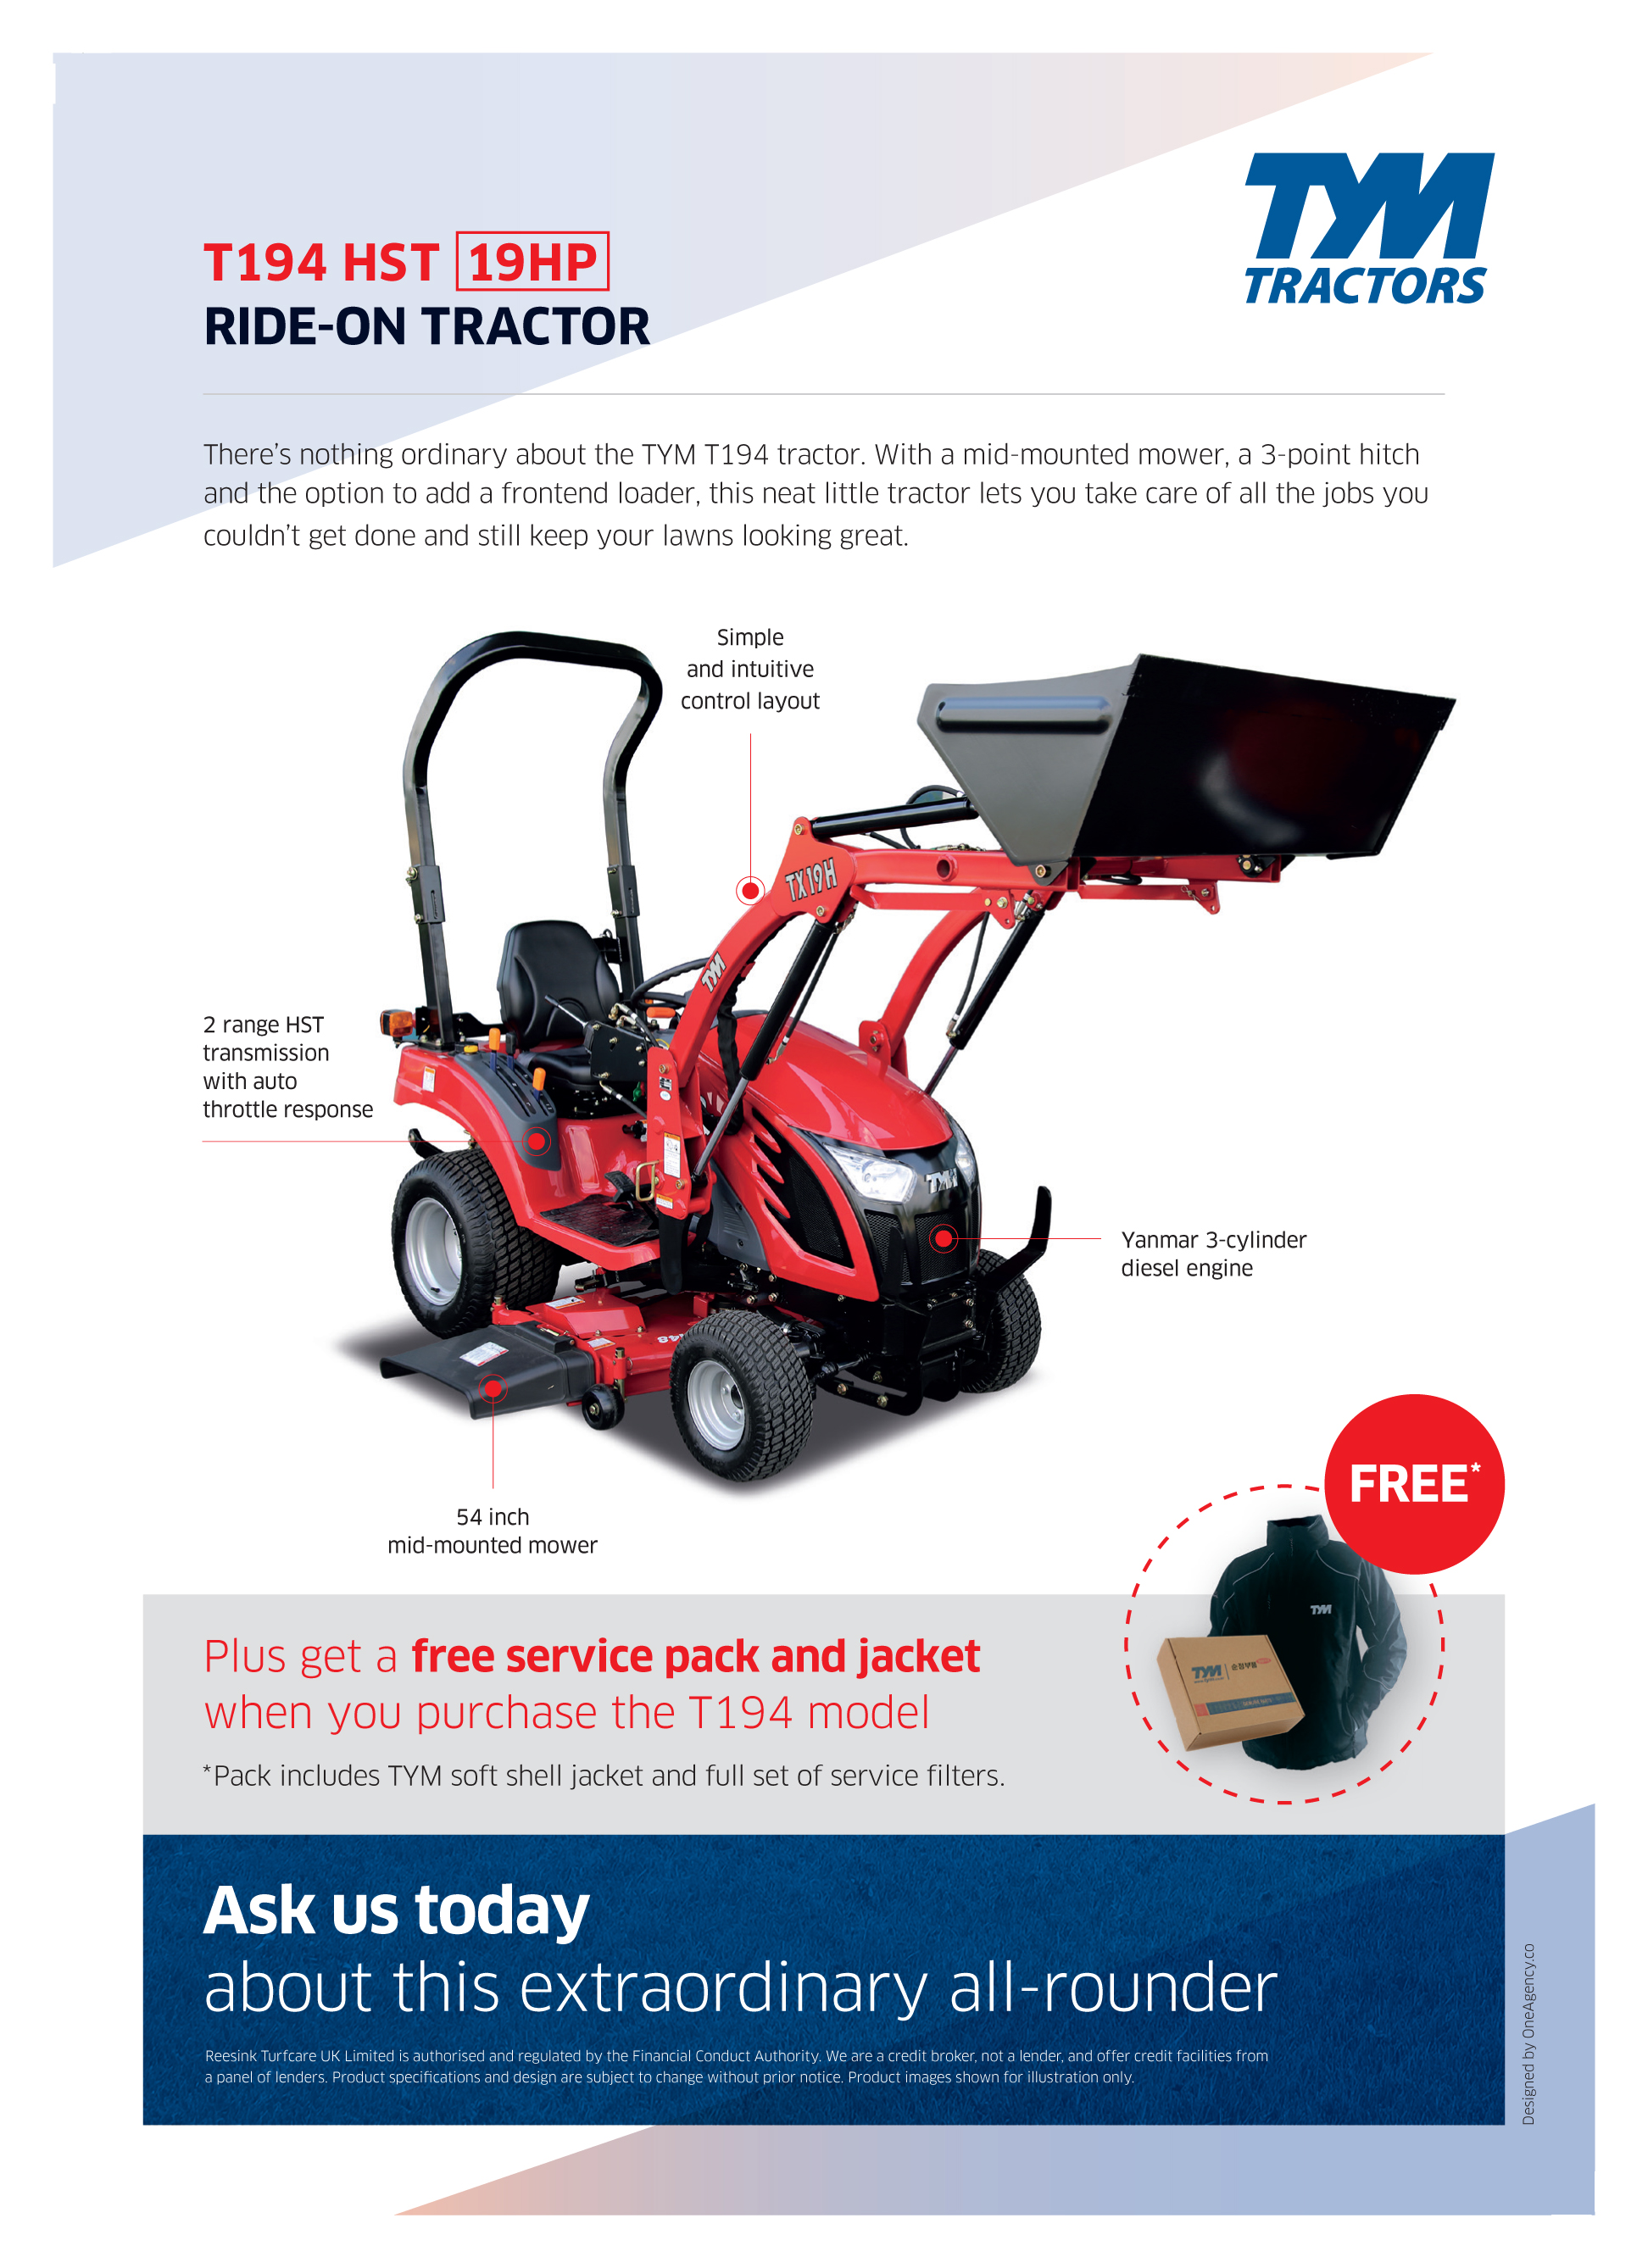 Introducing the multifunctional TYM T194 tractor